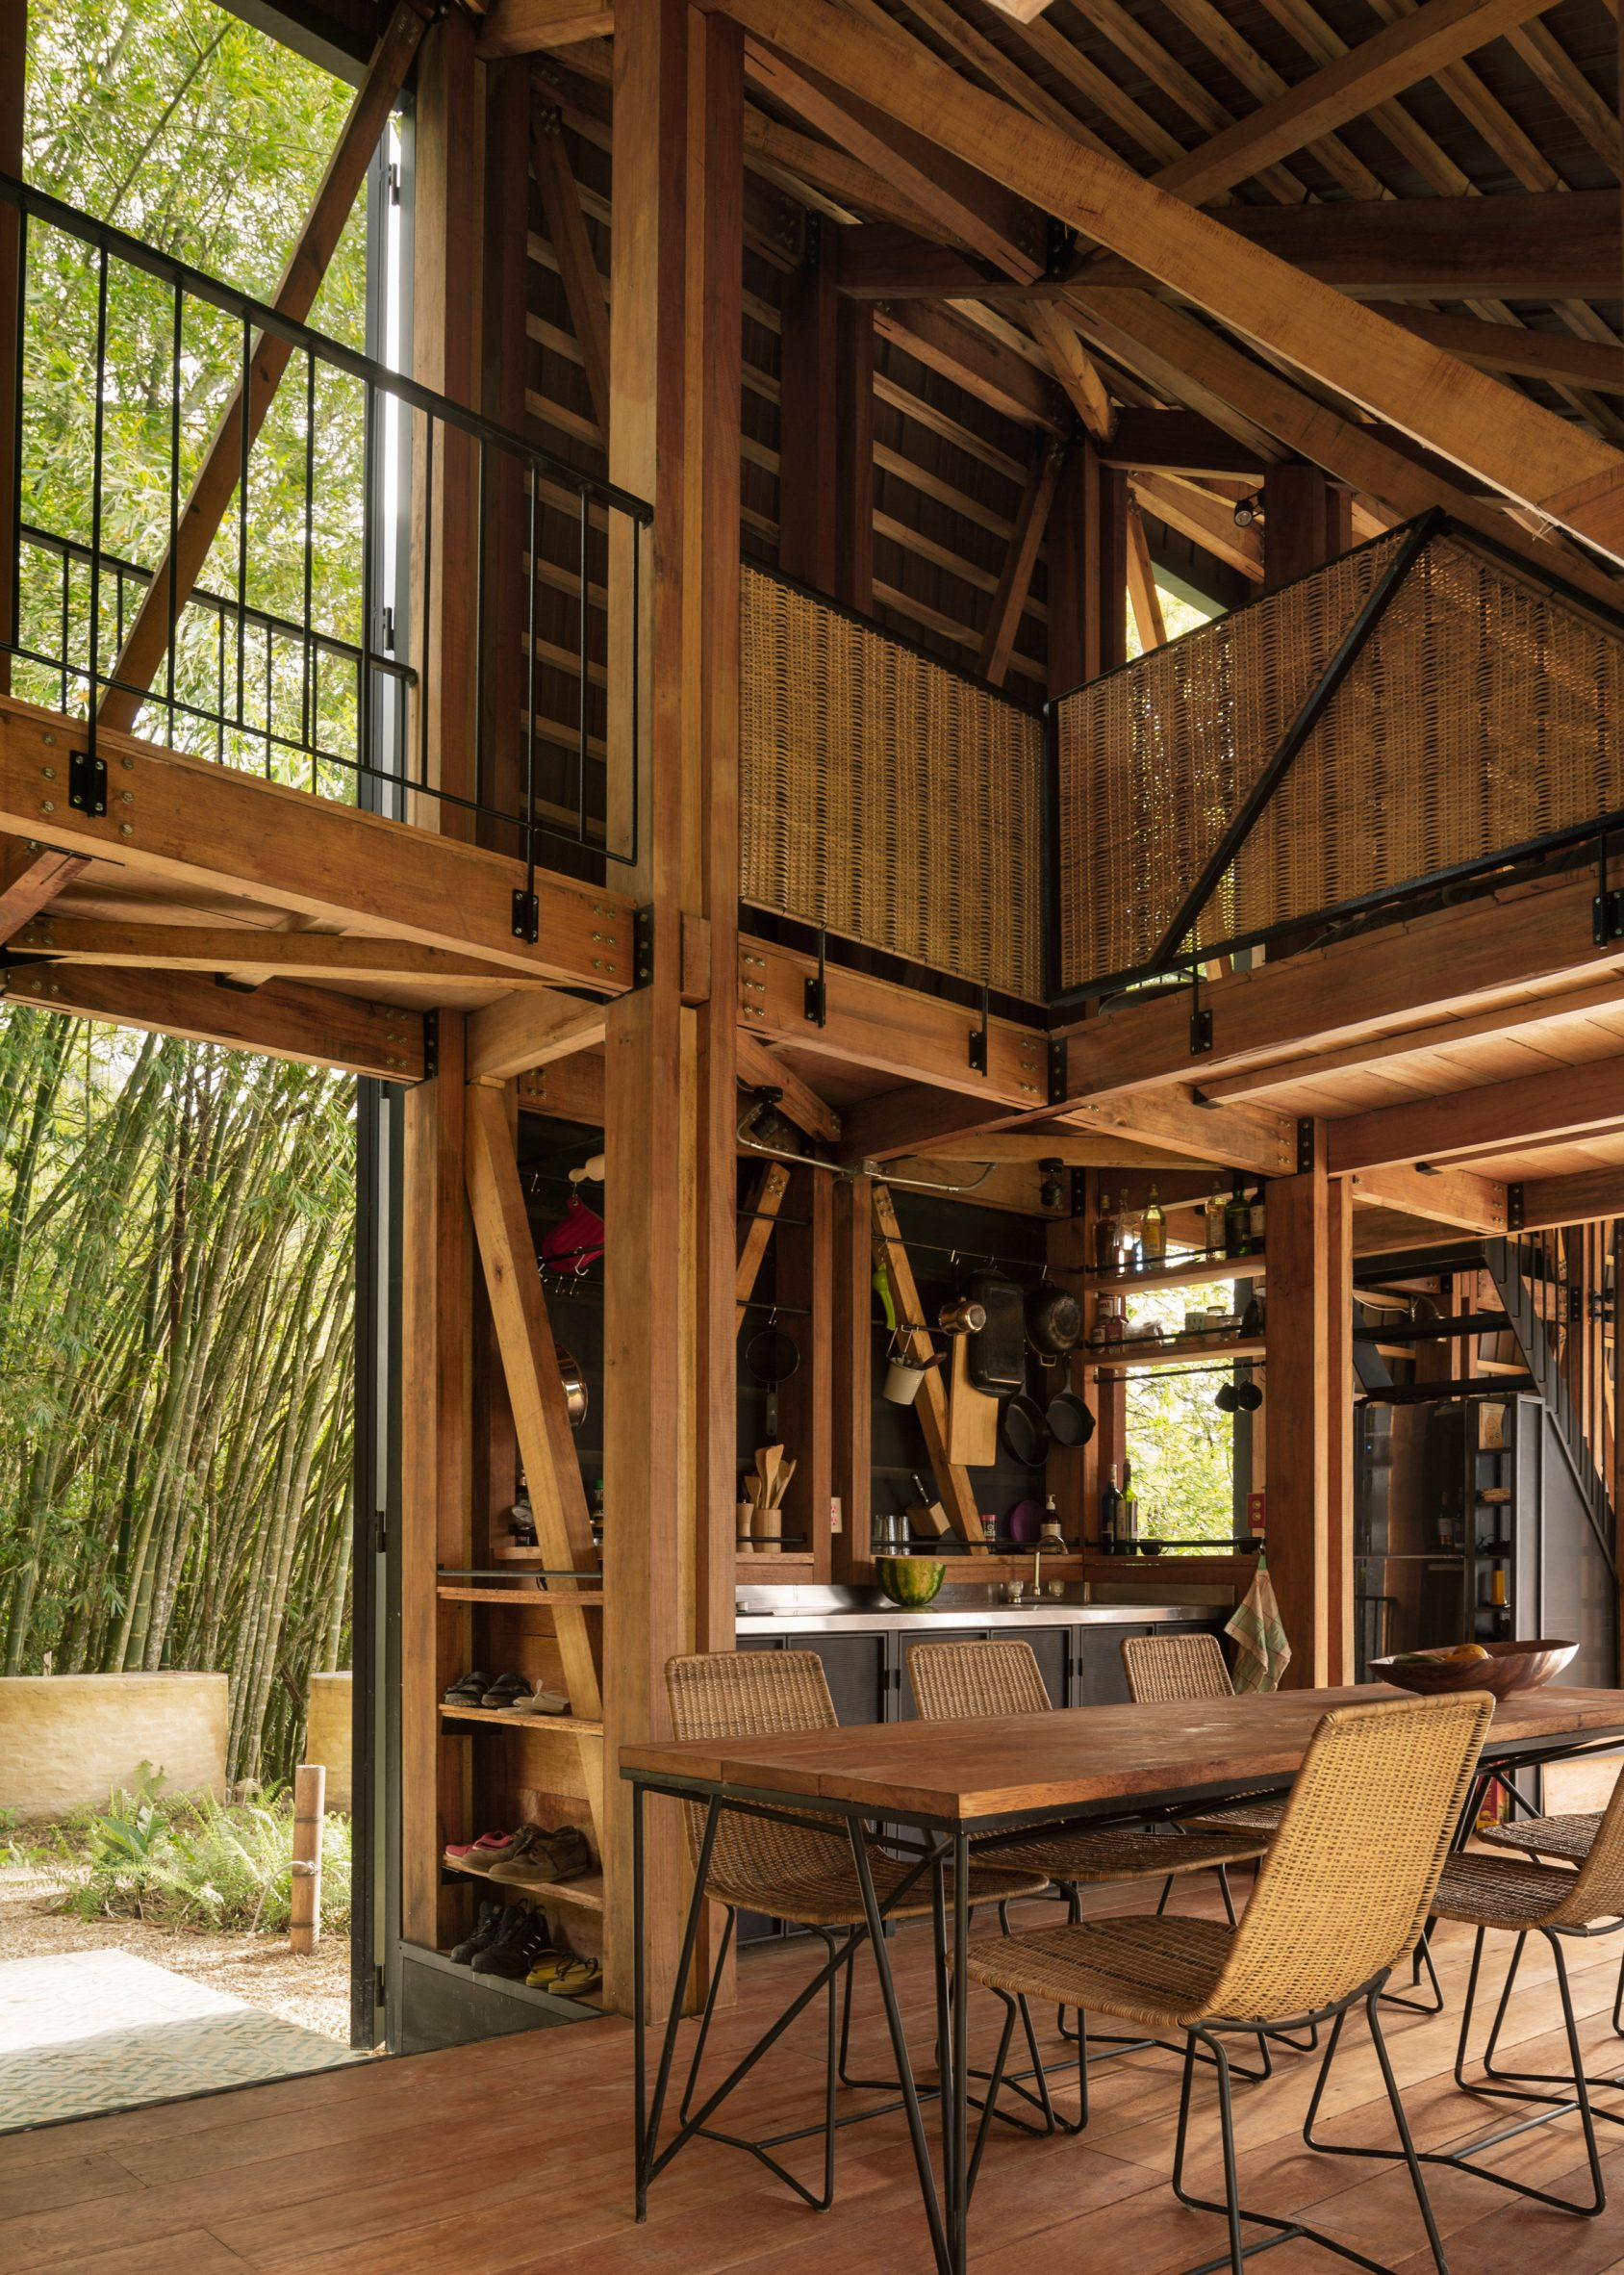 Wooden interiors in the cabin